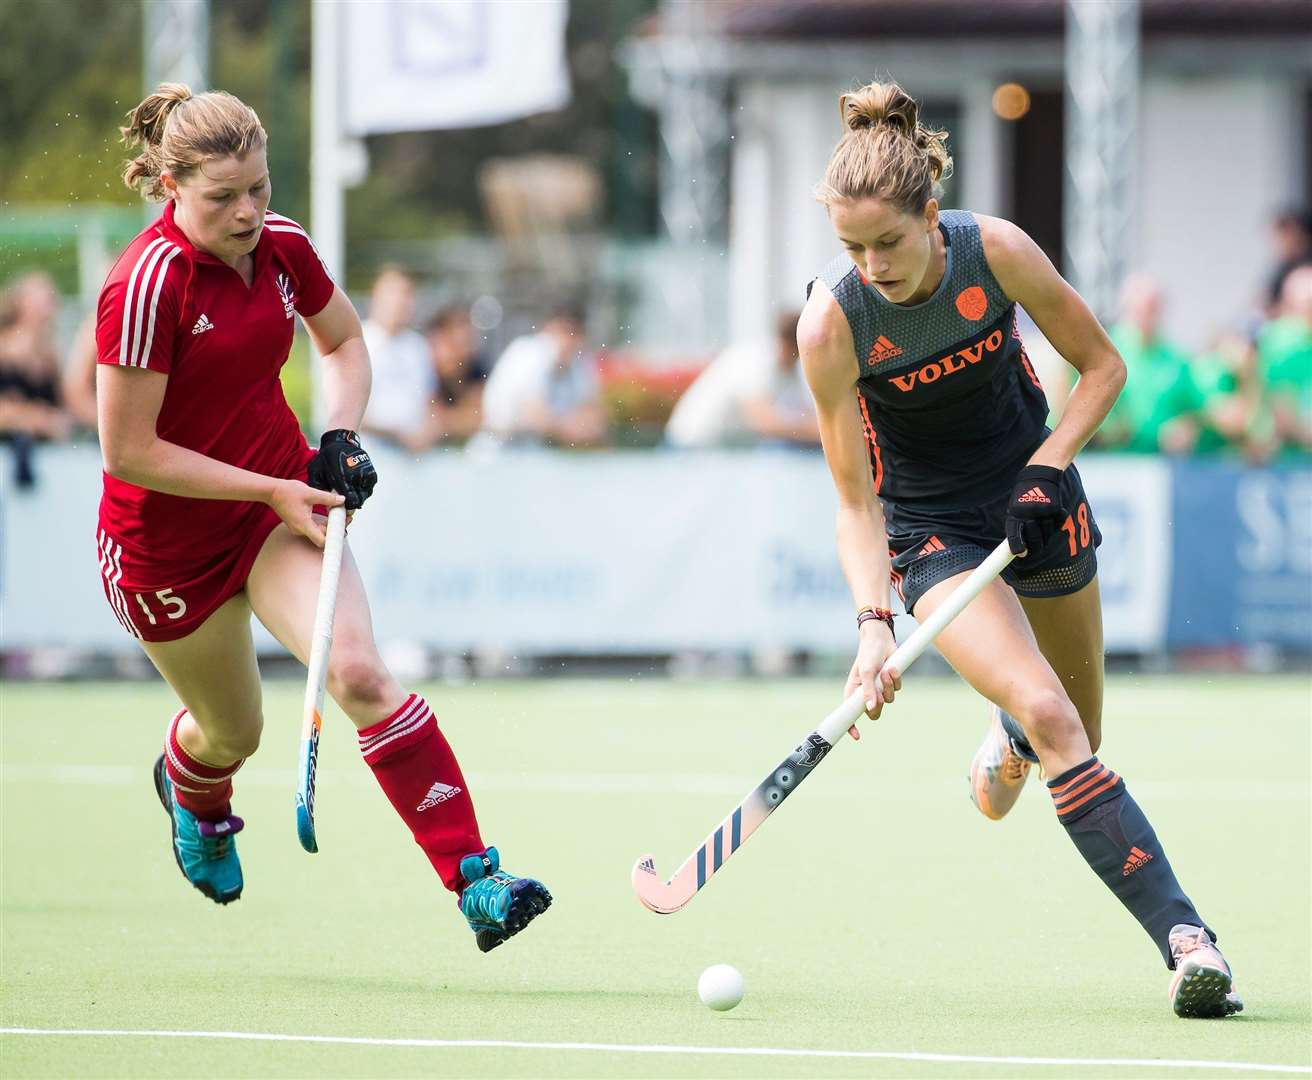 Tess Howard, who has been called up for GB hockey. Picture: Koen Suyk/England Hockey. (8776556)